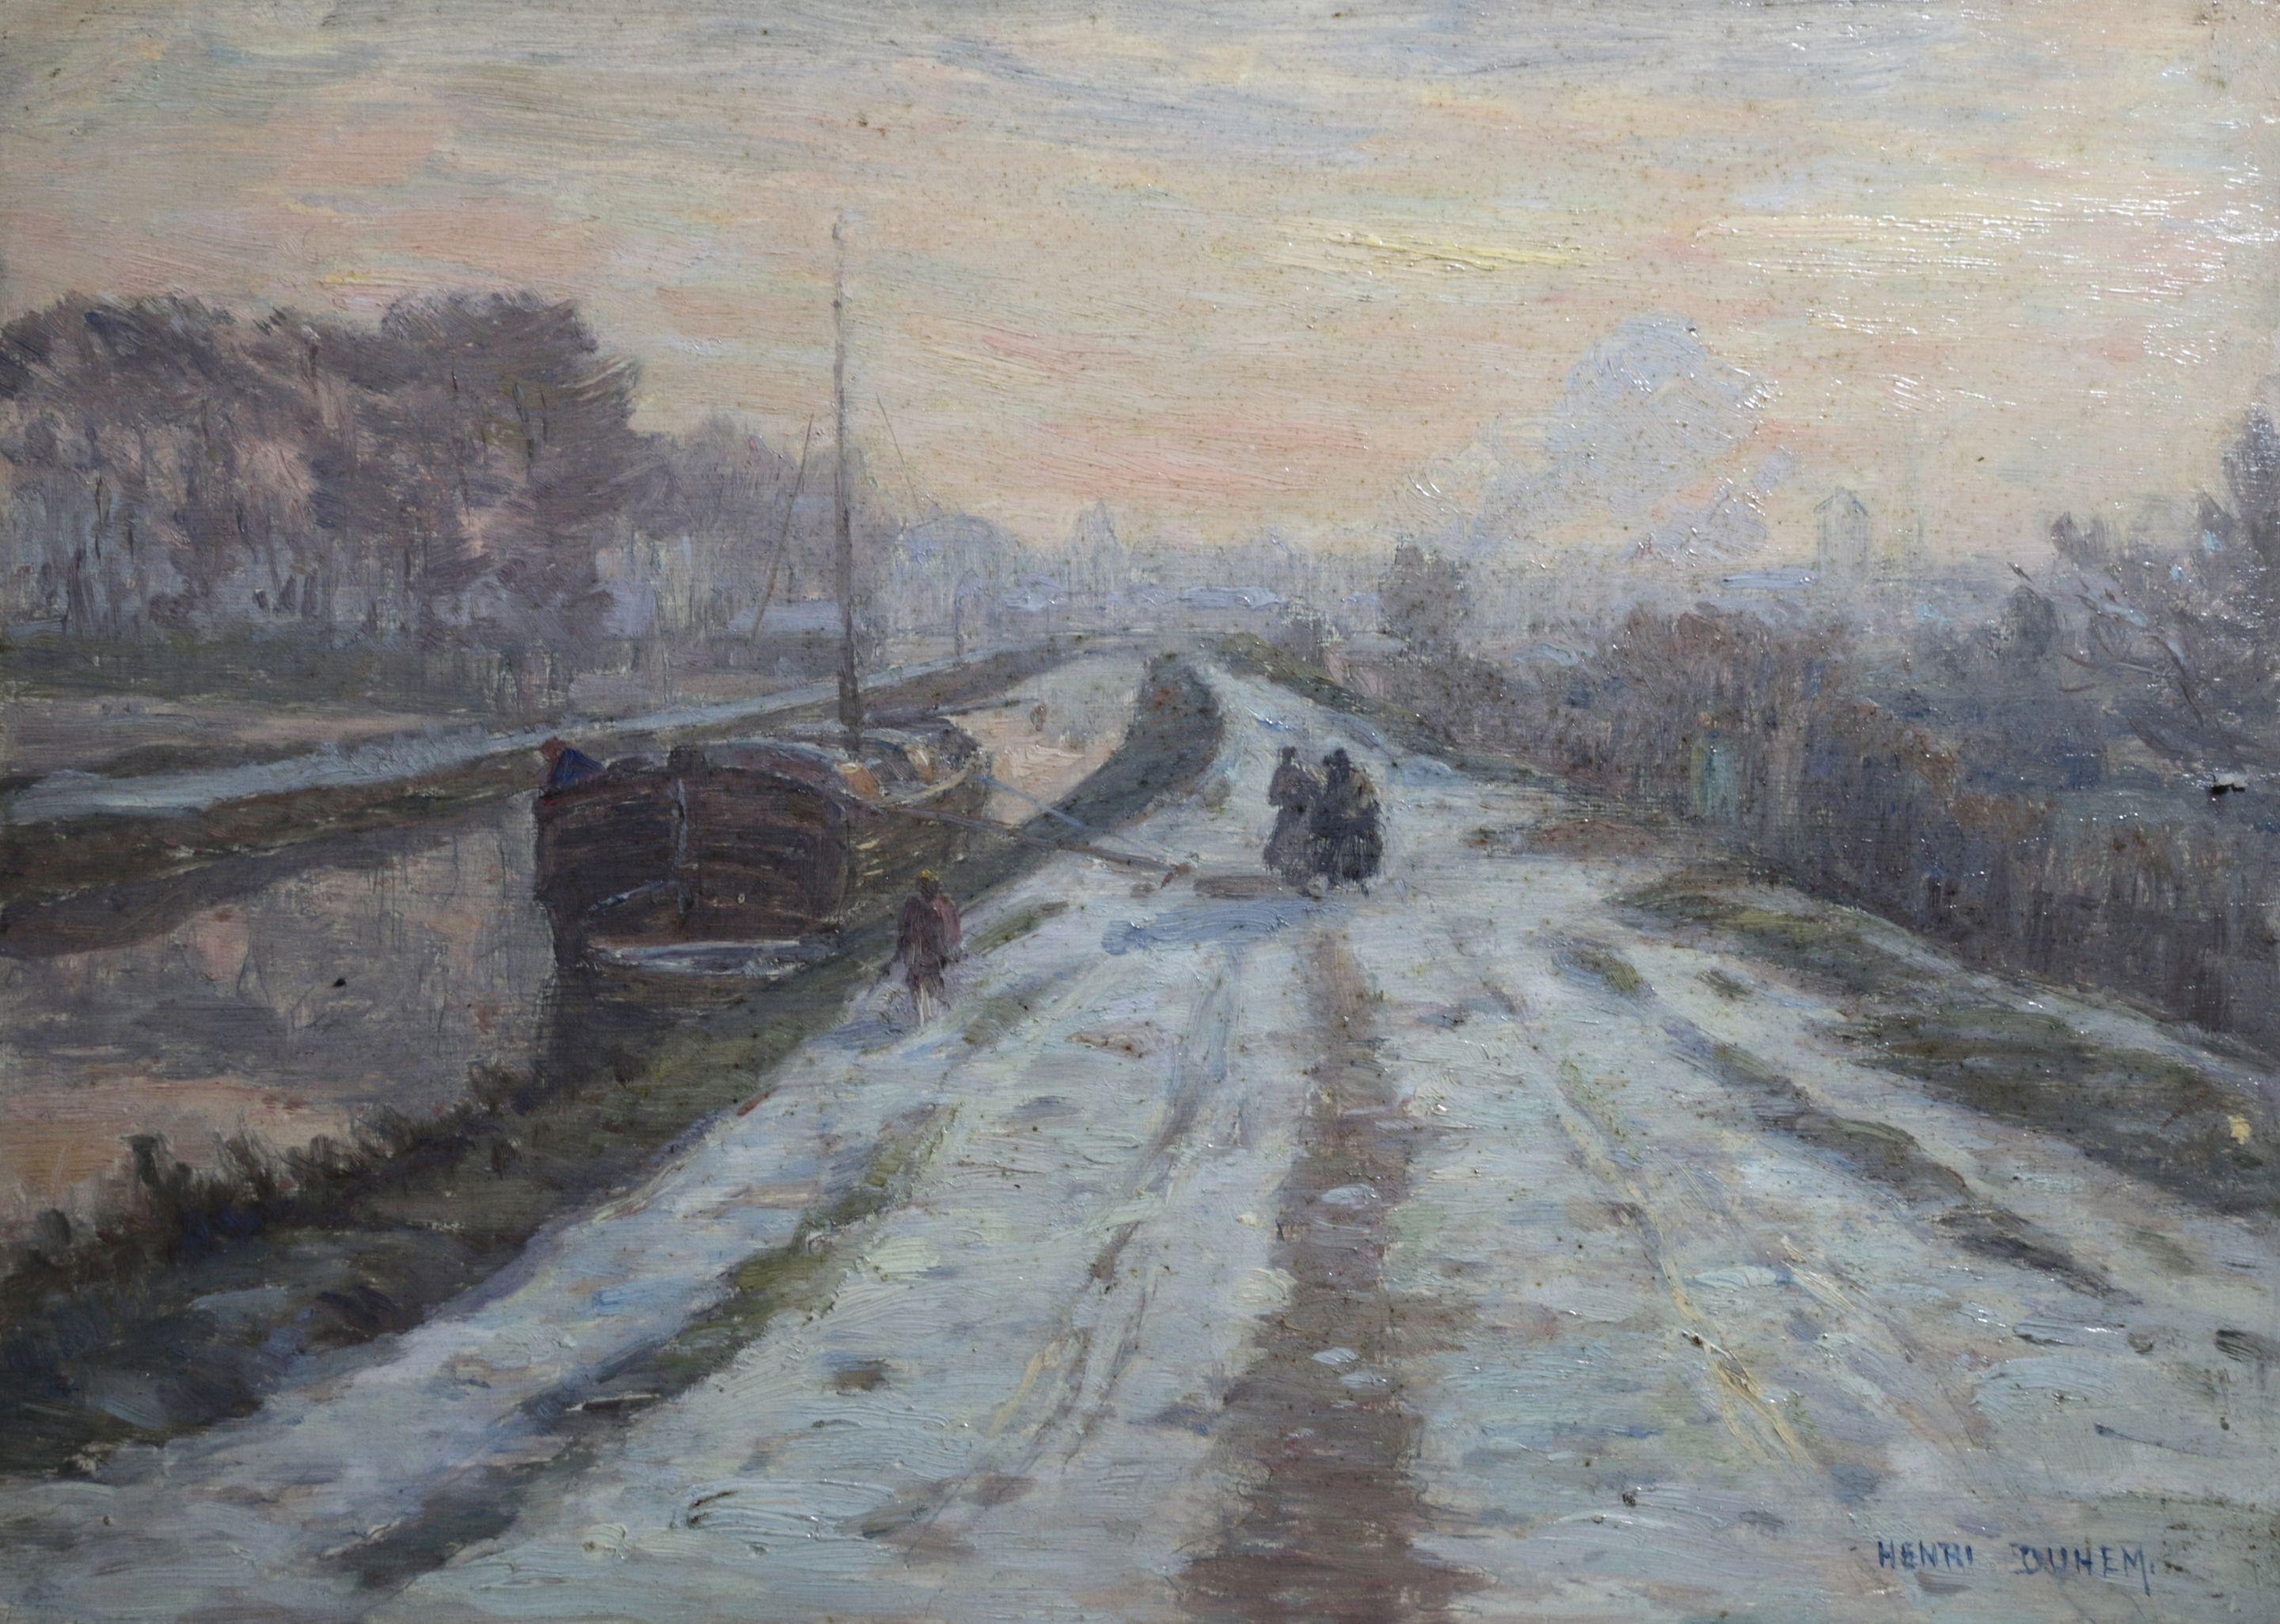 Hiver - Douai - 19th Century Oil, Figures by Canal in Snow Winter Scene by Duhem